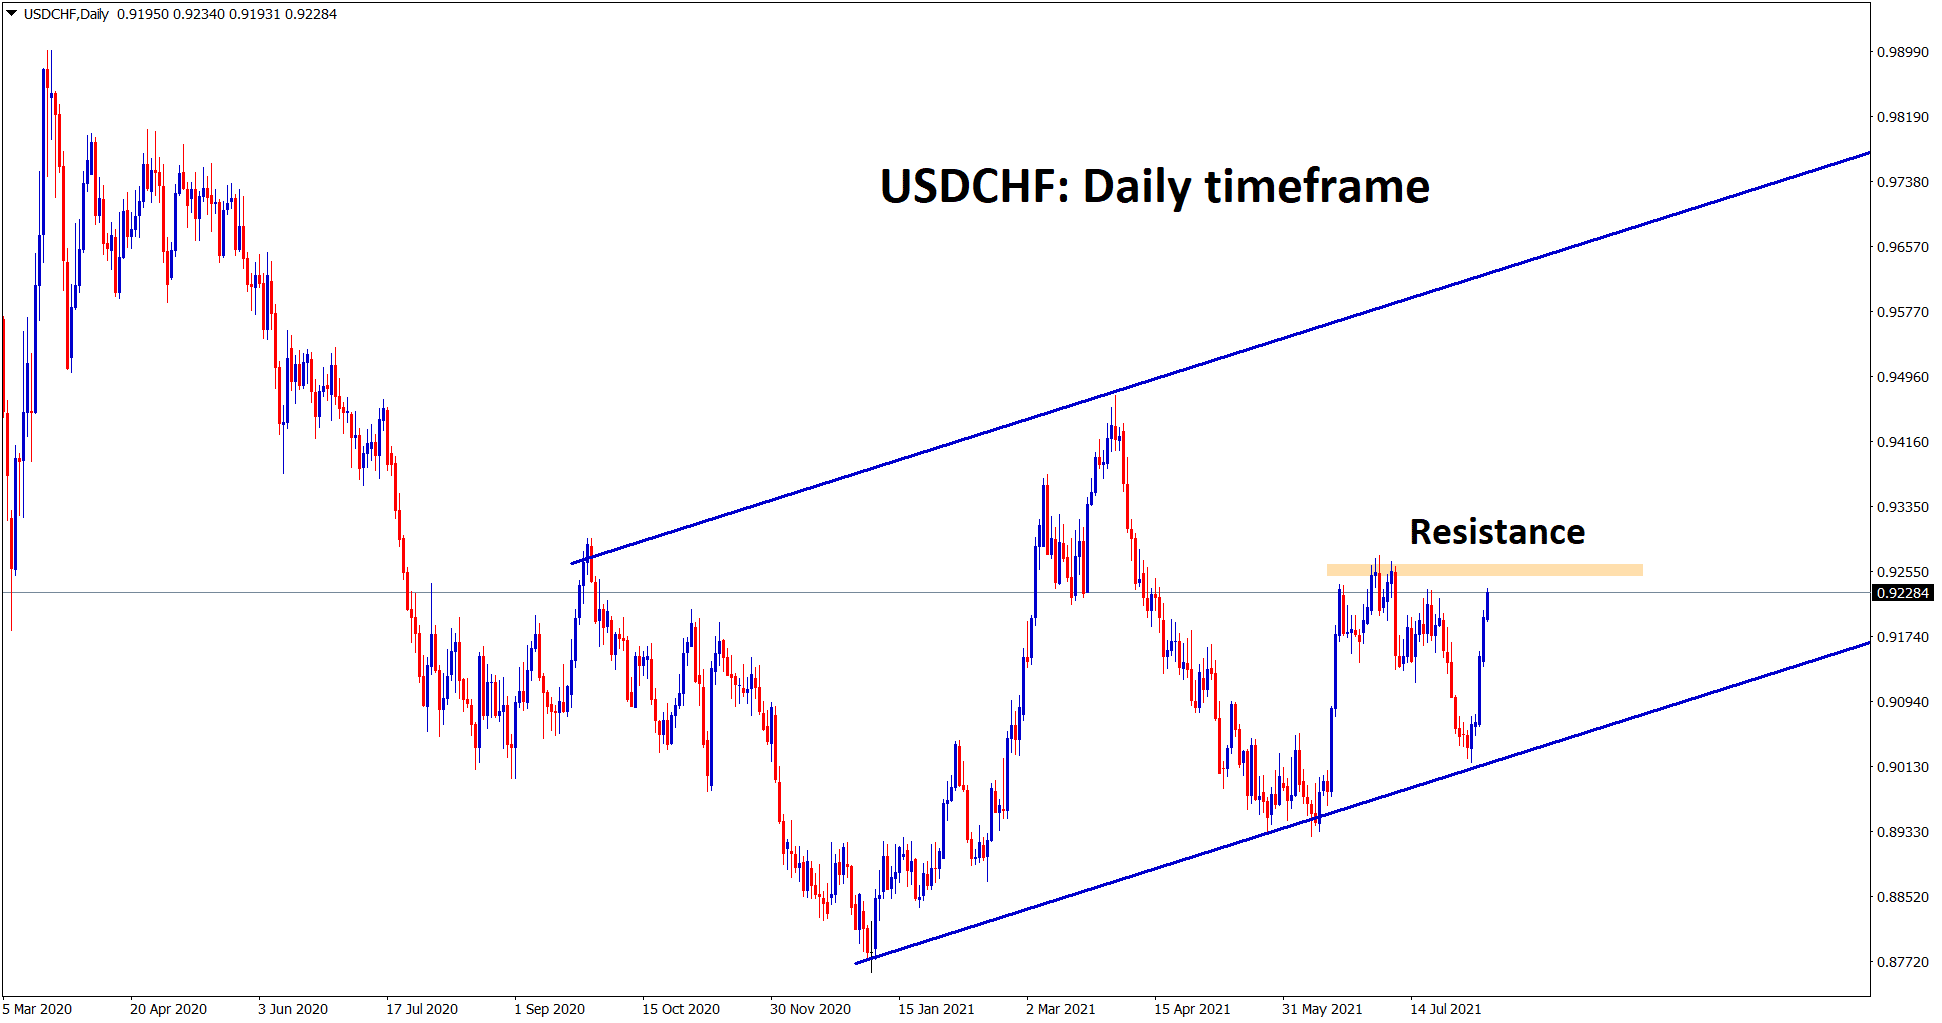 USDCHF has moved up continuously to the recent high if it breaks the top we can expect a big movement to the top